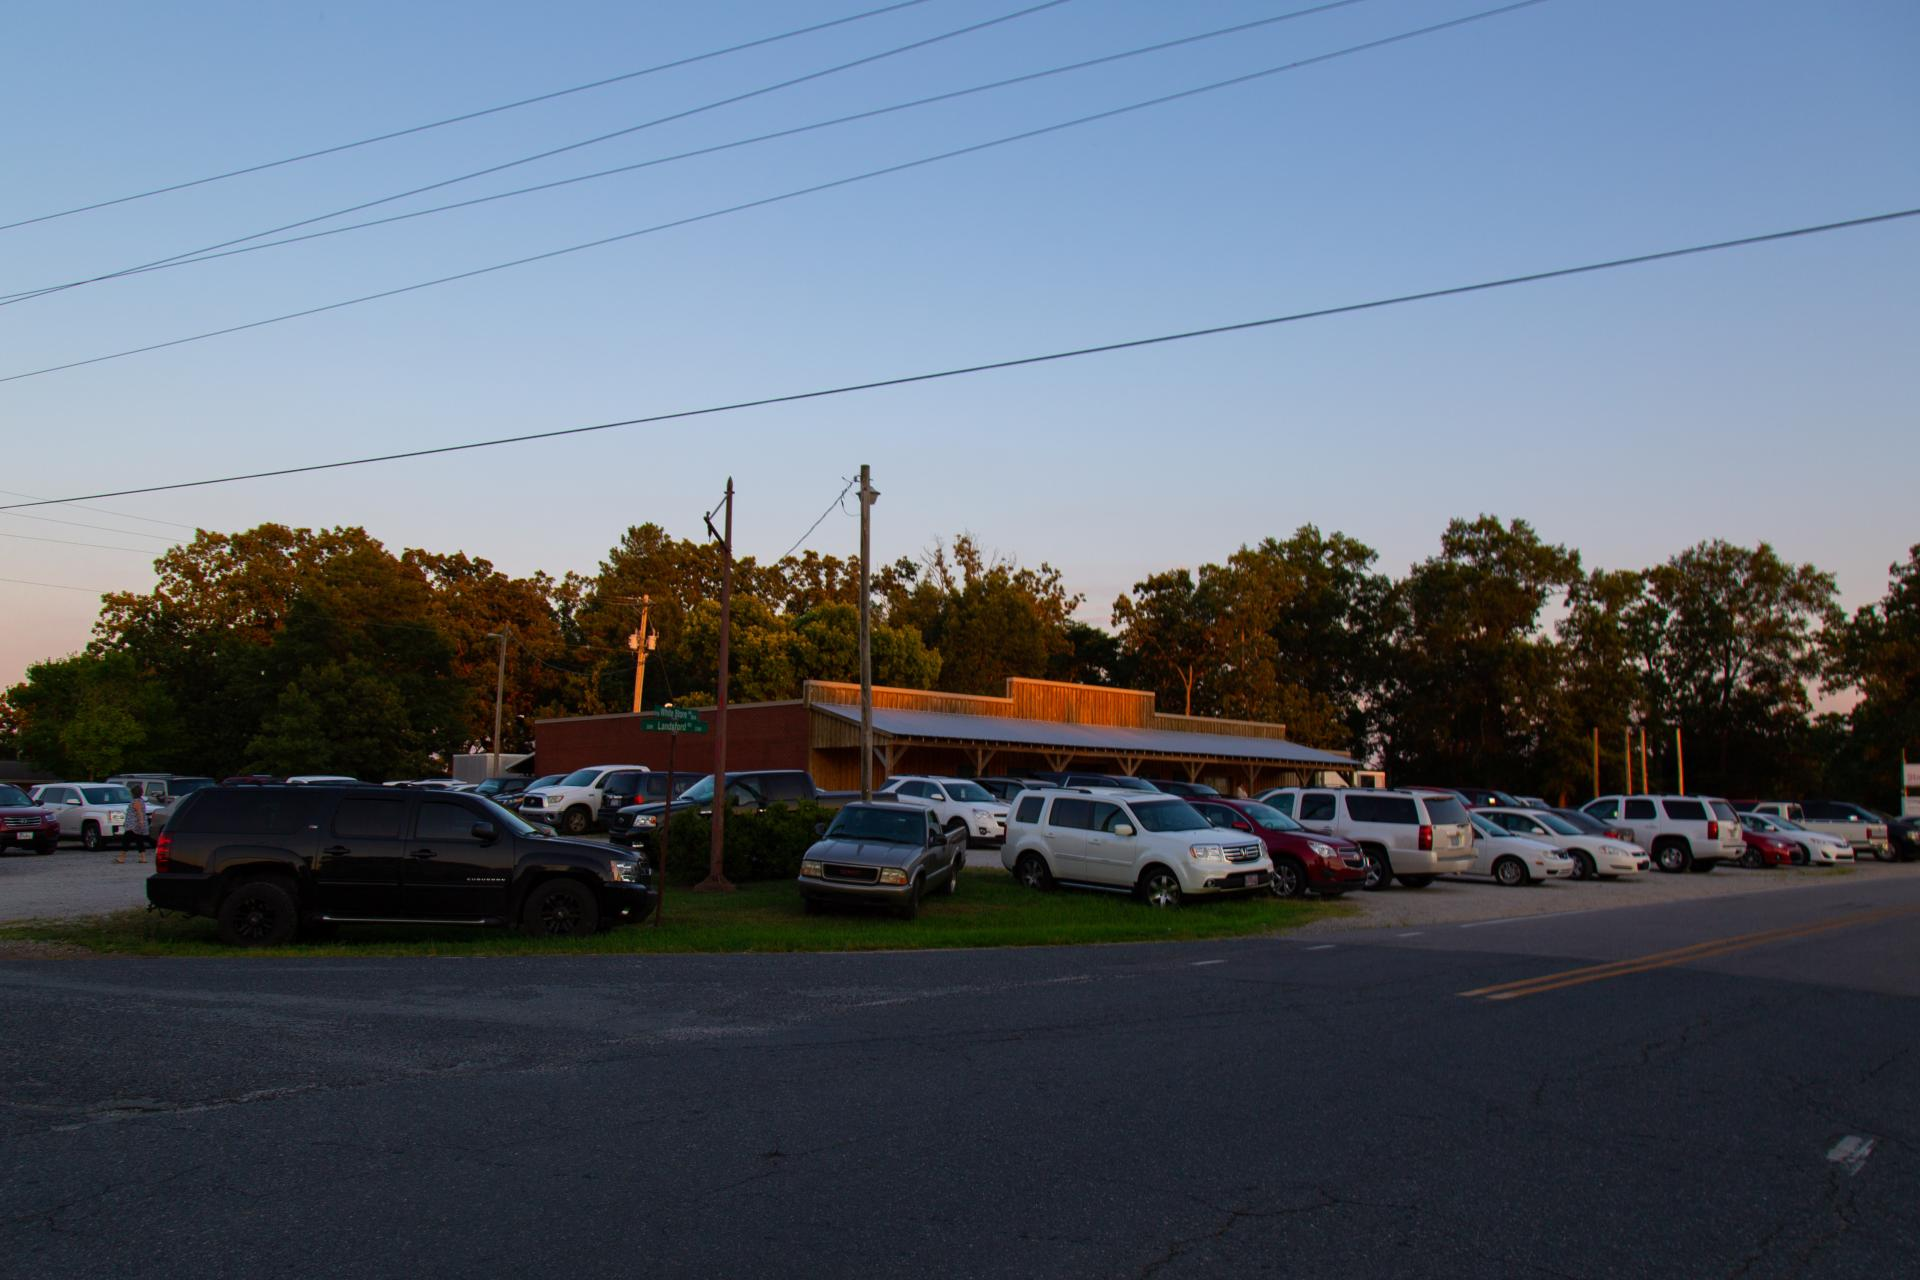 A full parking lot outside the Old Hargett Store